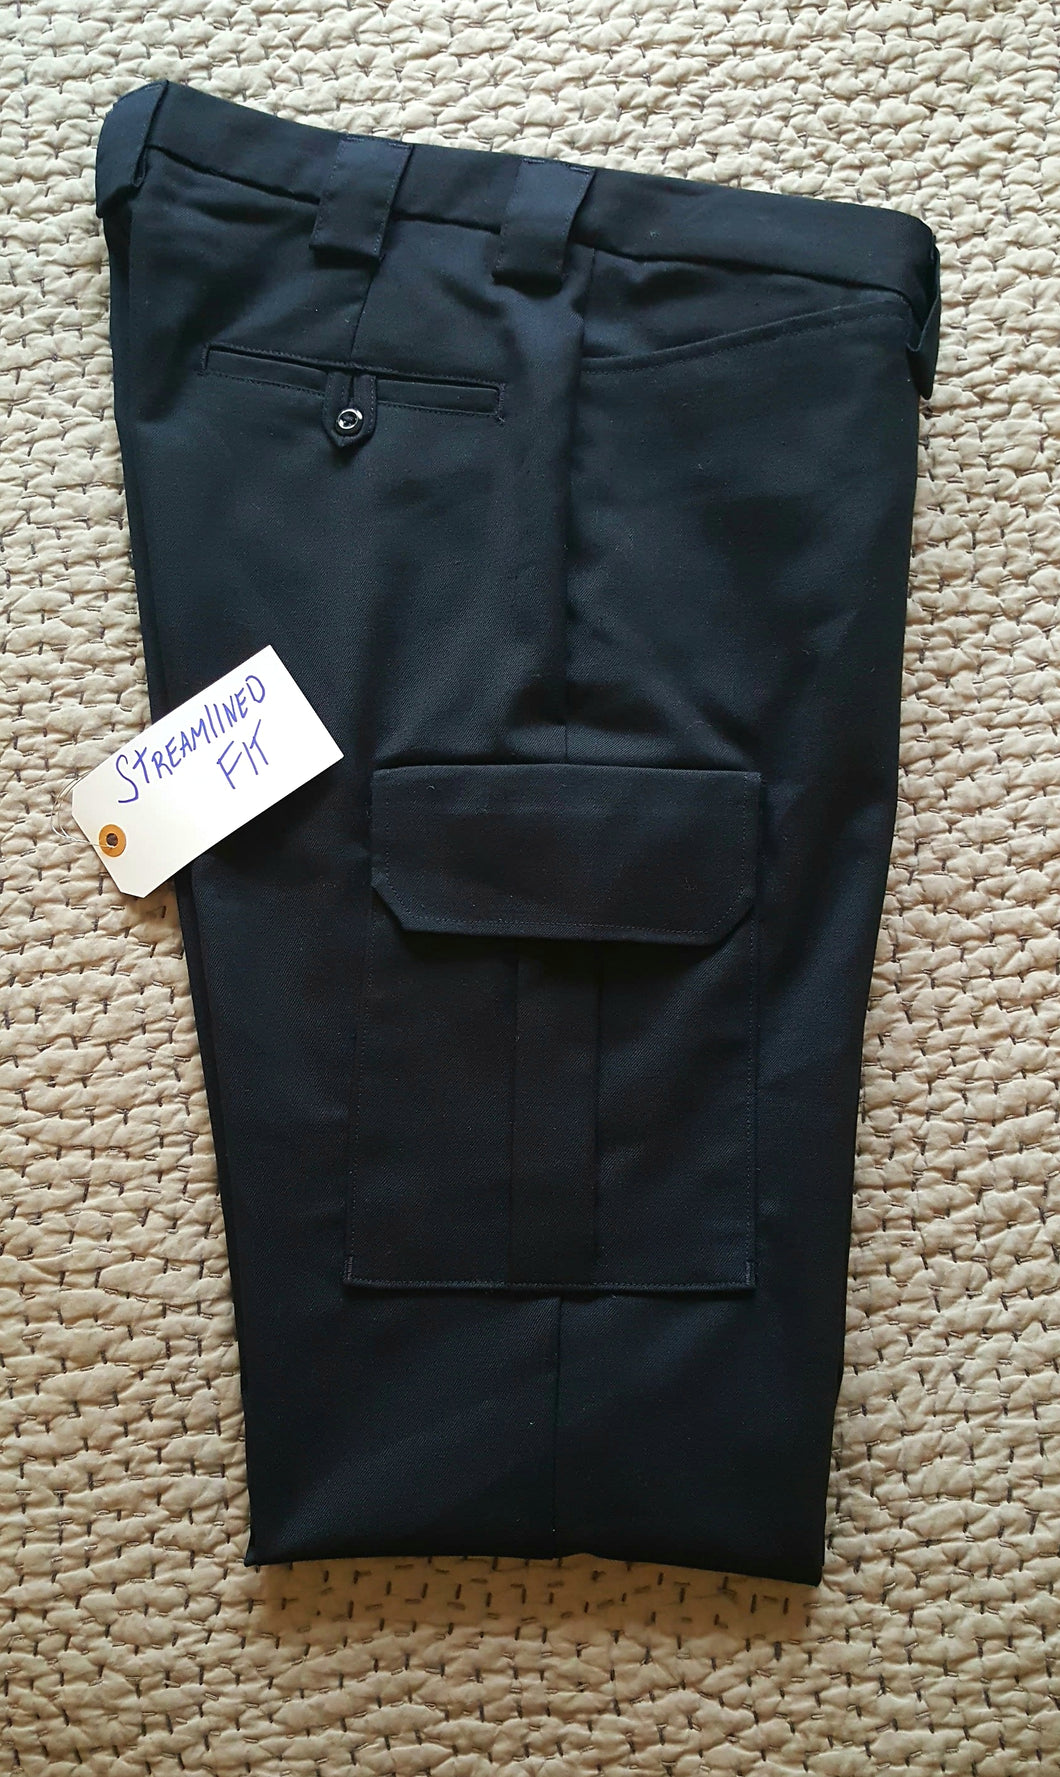 Streamlined Fit - Class B - Cargo Uniform Pants